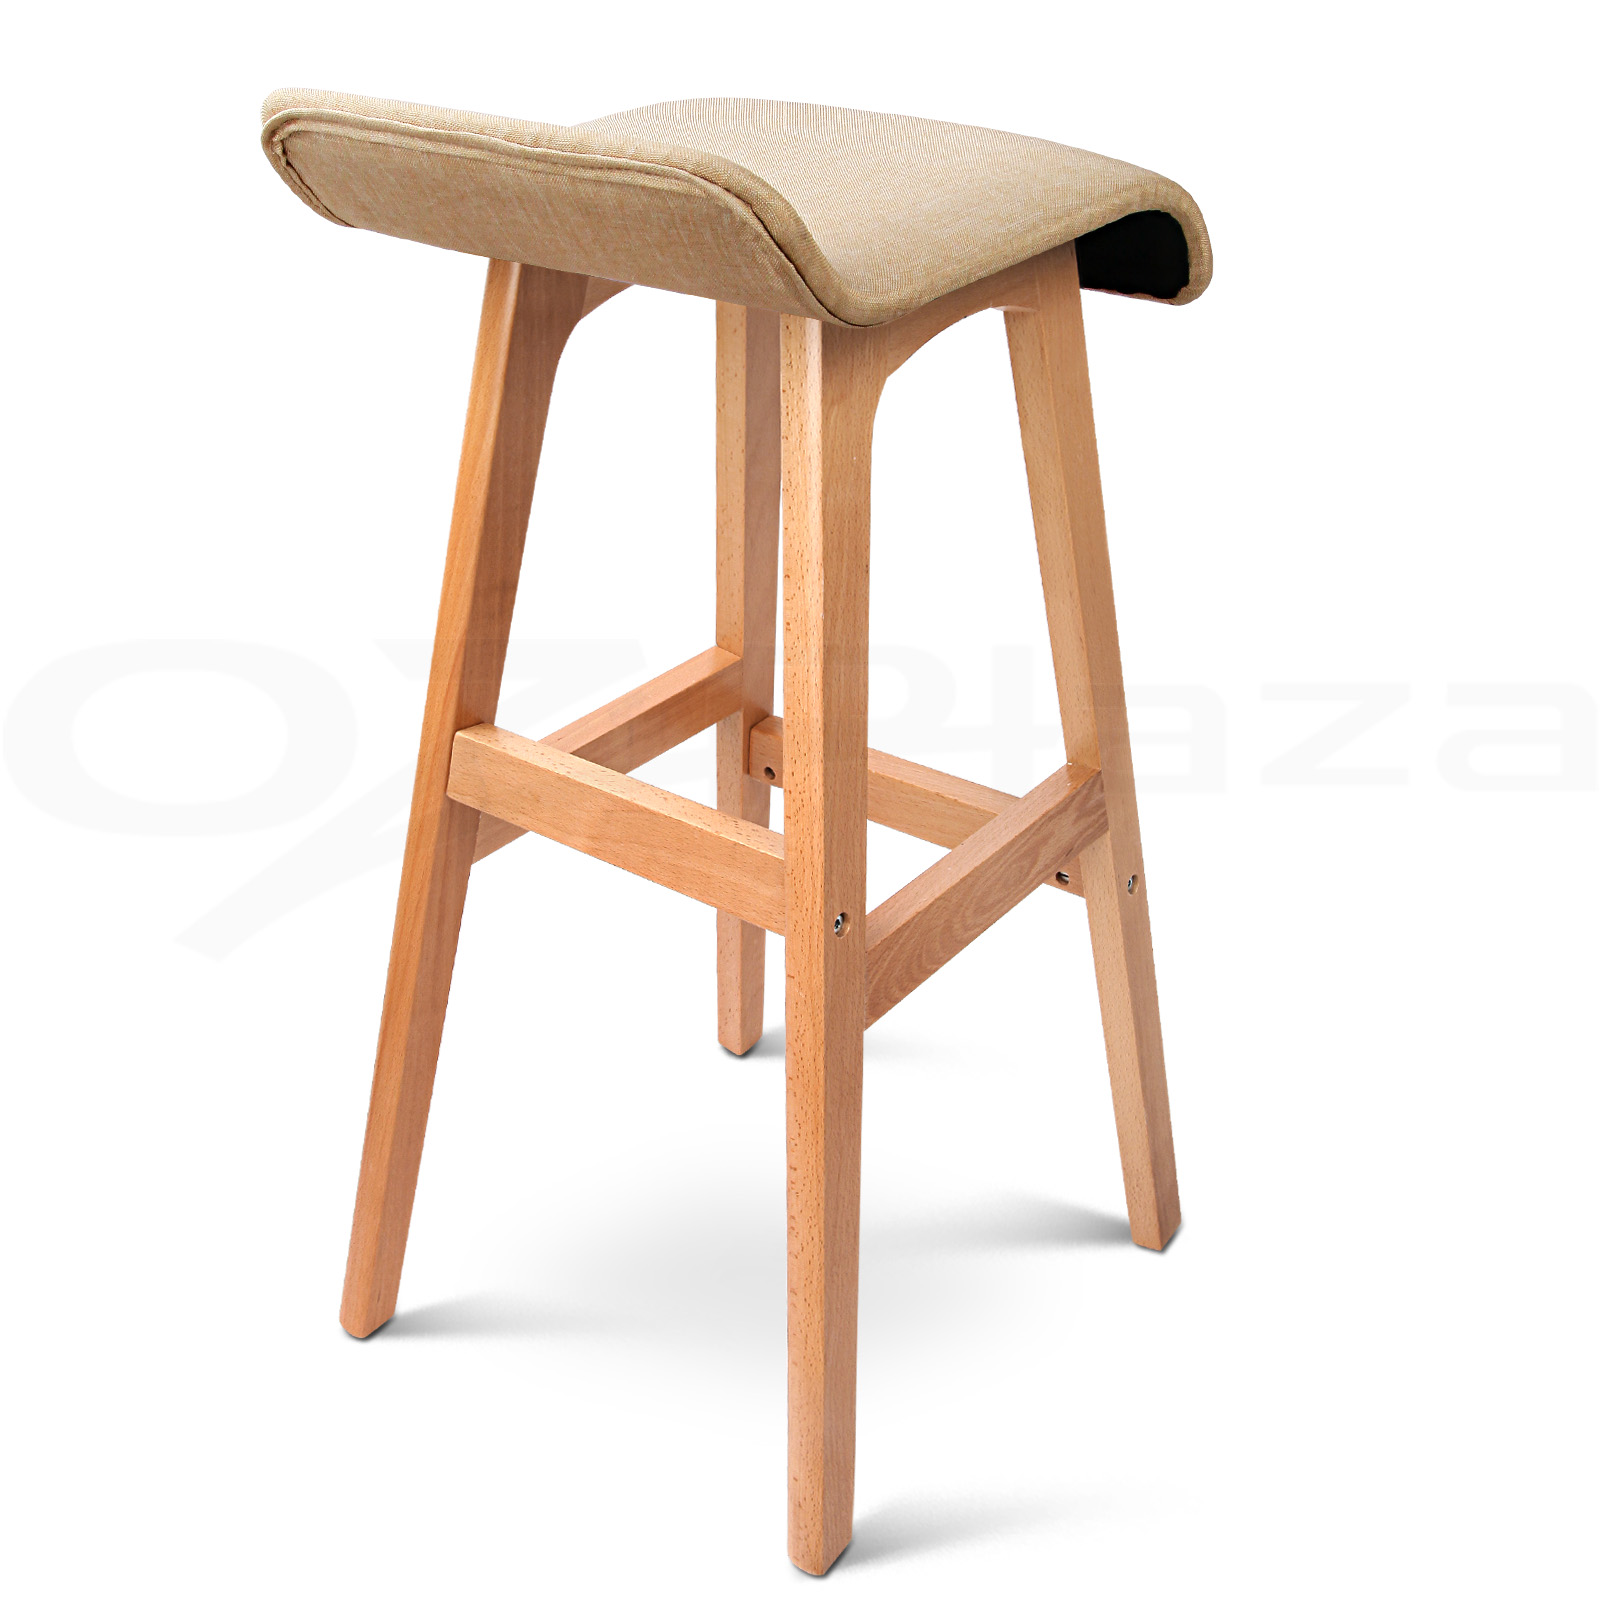 4x Wooden Bar Stools Kitchen Barstool Fabric Foam Seat